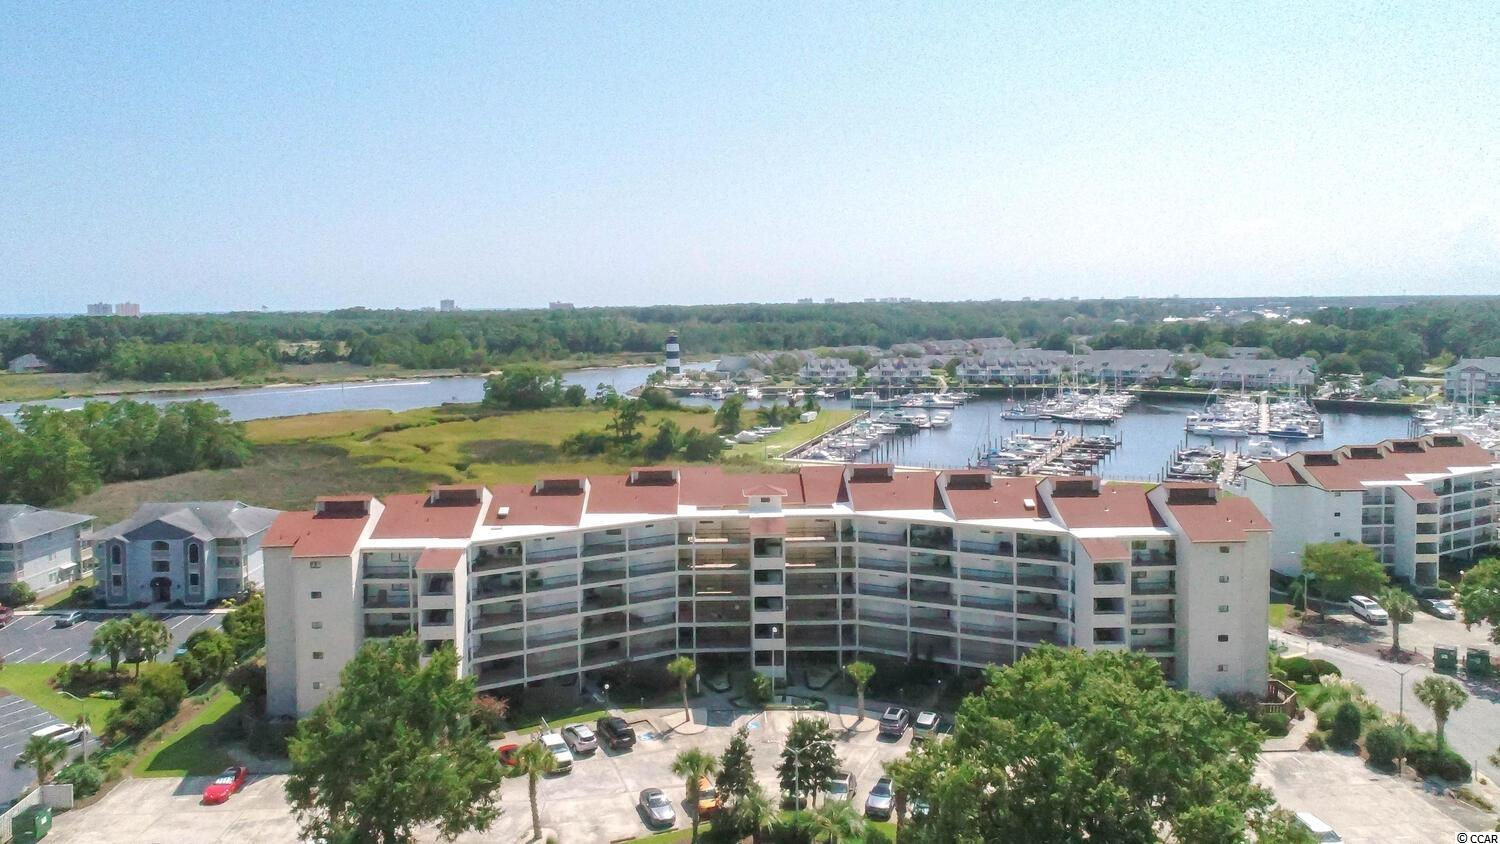 This is Boaters Dream ready for your boat and water toys.  This is a Fifth Floor 2 BR 2 BA unit with a large covered Patio, and a spectacular views of Coquina Harbor, Marsh and Intra-coastal waterway.  This condo has a huge covered patio that enables residents too barbecue on their decks with propane grills, making this an additional unusual find.   This unit just underwent renovations, with imported ships lathe in the main living area, and both renovated bathrooms.  The HOA includes building insurance, water, sewer , phone , internet and wifi.  The HOA also has a club  house available for owners use and private reservation, as well as a beautiful outdoor pool and hot tub that includes a large picnic area under a cabana.  All condos in this boaters oasis come with at least one boat slip membership located in the adjacent Coquina Harbour Yacht Club marina with an associated association fee which includes, dock maintenance, water and electric for each membership slip.    Boaters look no further, your dream awaits you in this spacious condo with huge outdoor living space that brings the outdoors in and makes for great entertainment space.  When you step into this unit the decorators touches are everywhere, and it shows like a model.